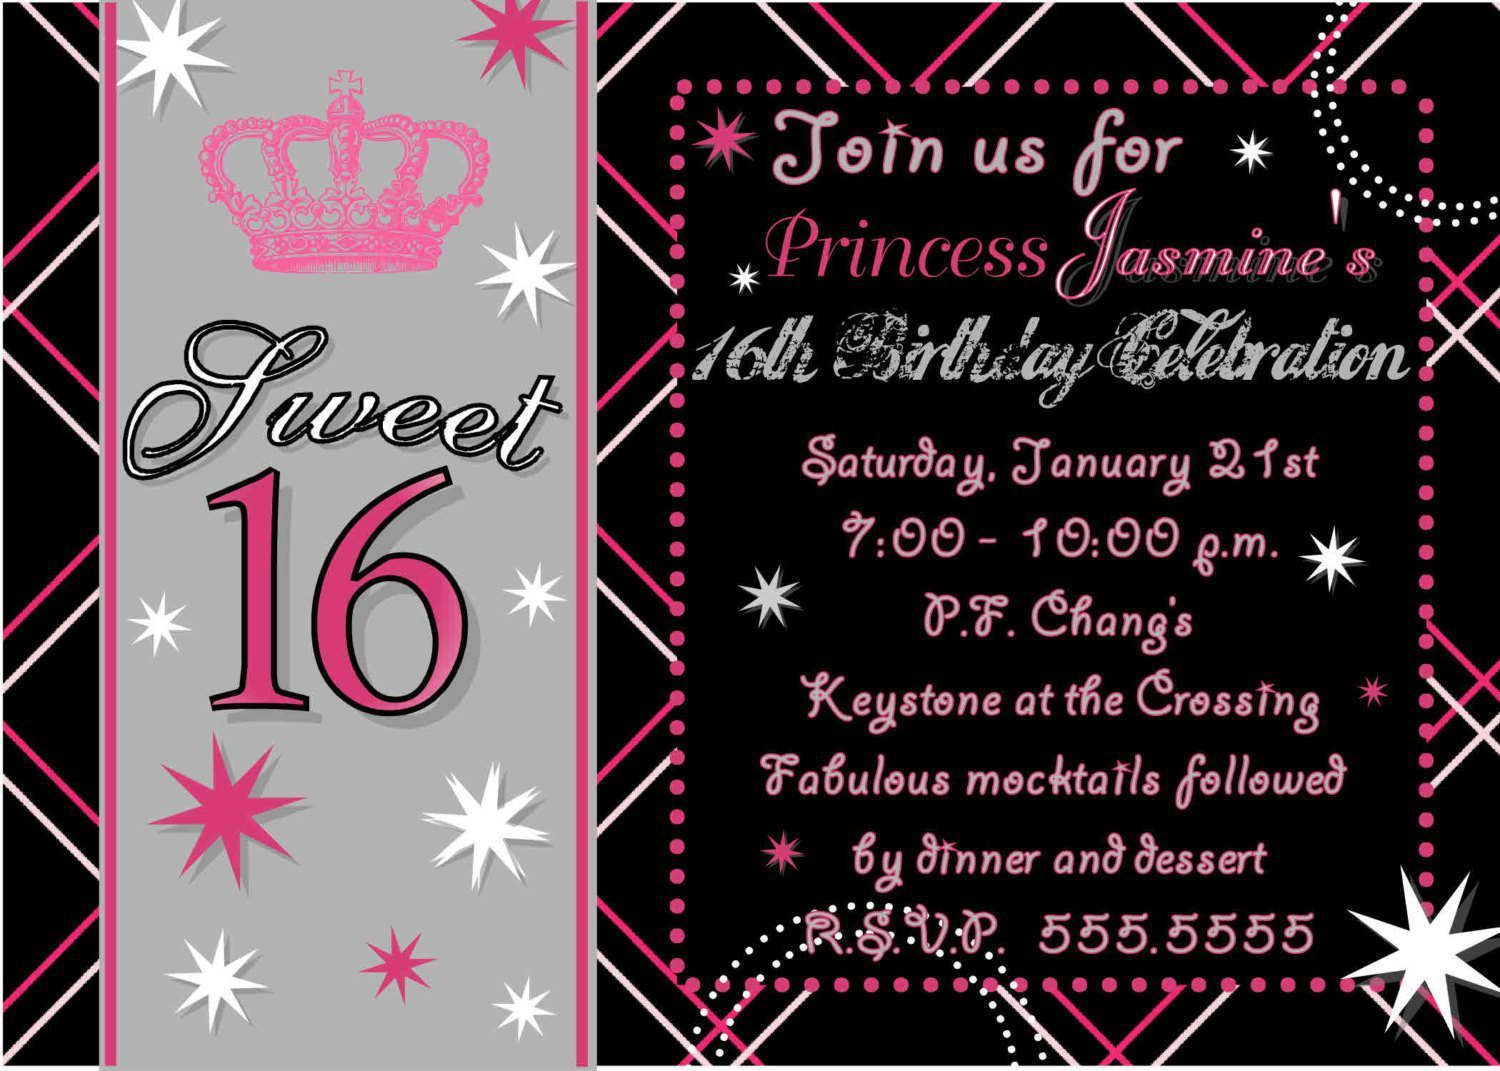 008 Fantastic Sweet 16 Invite Template Highest Clarity  Templates Surprise Party Invitation Birthday Free 16thFull